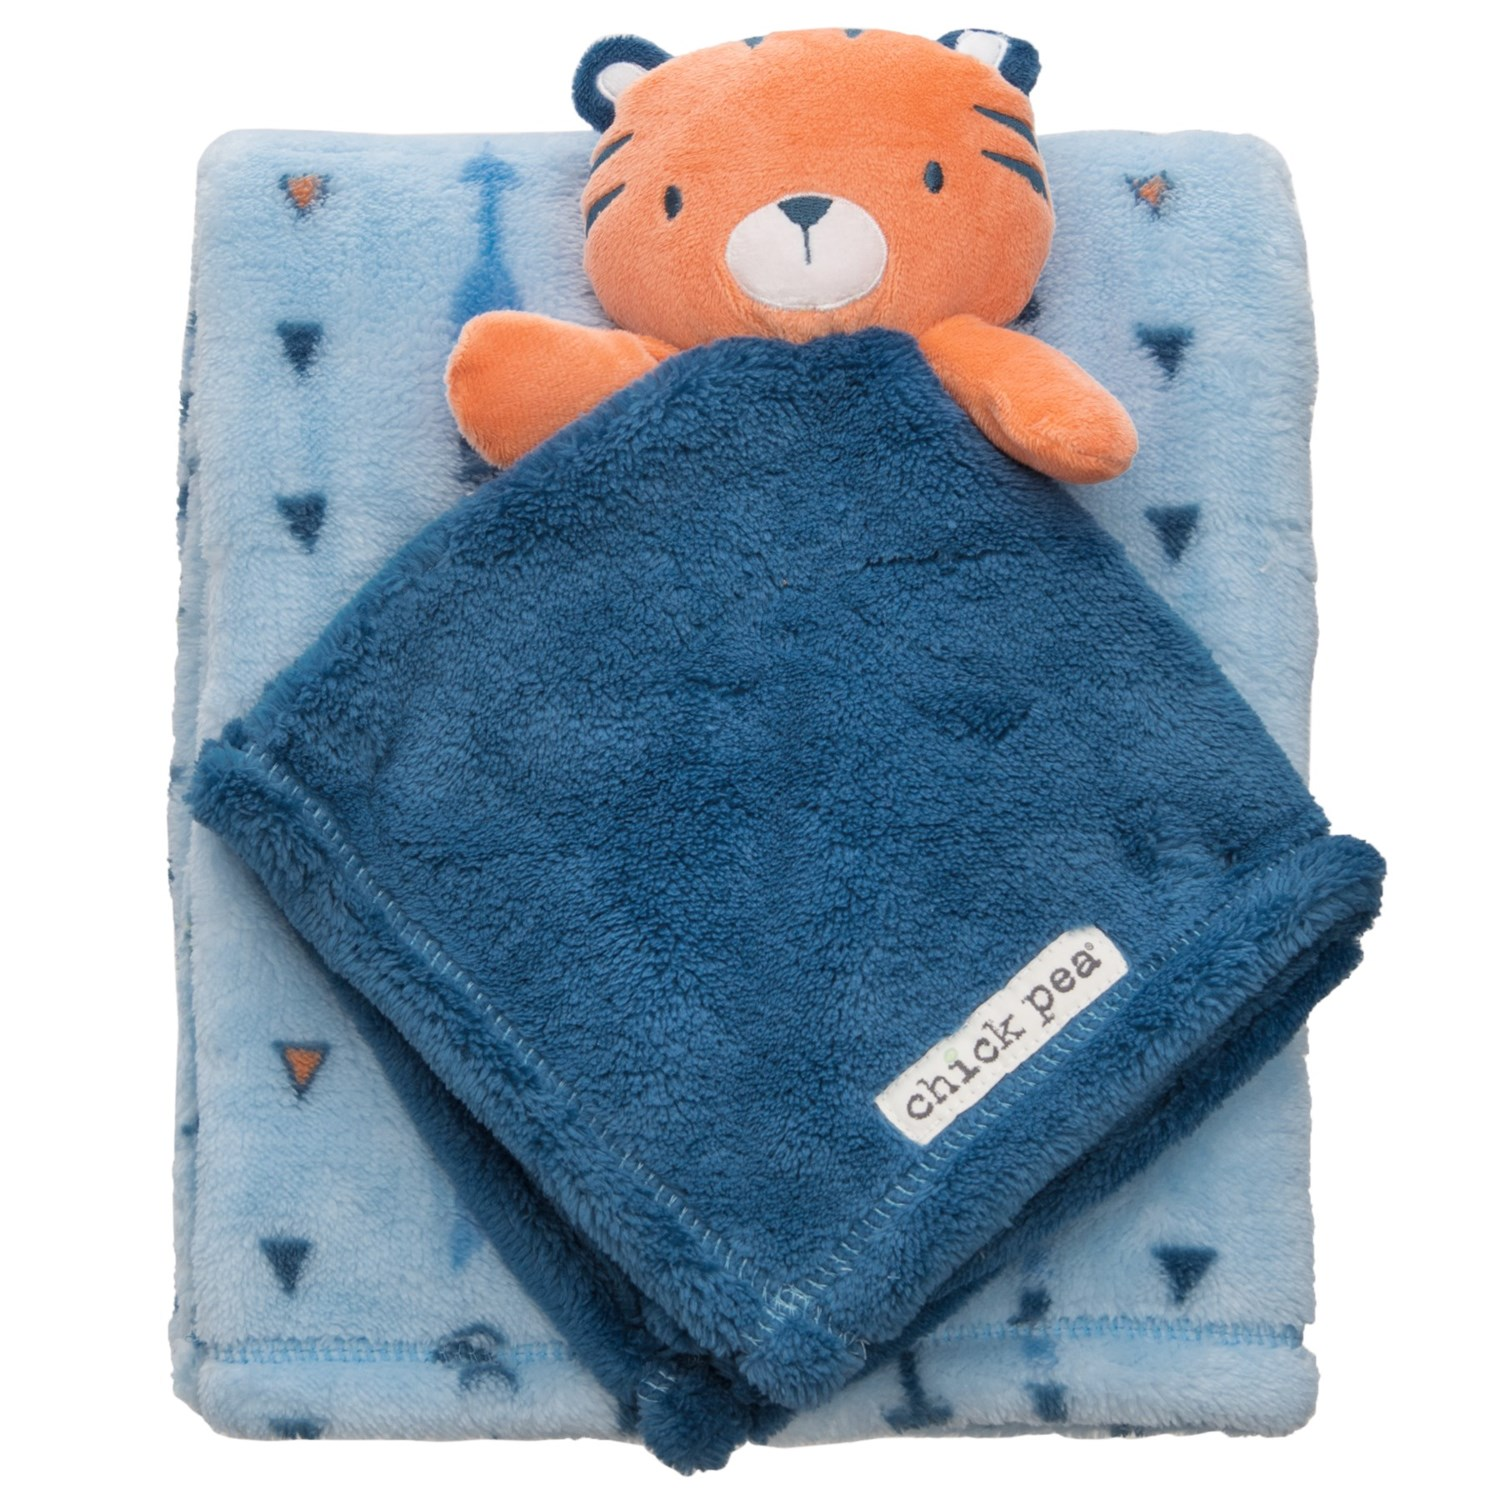 Chick Pea Tiger Buddy and Blanket - 2-Piece Set (For Infants)